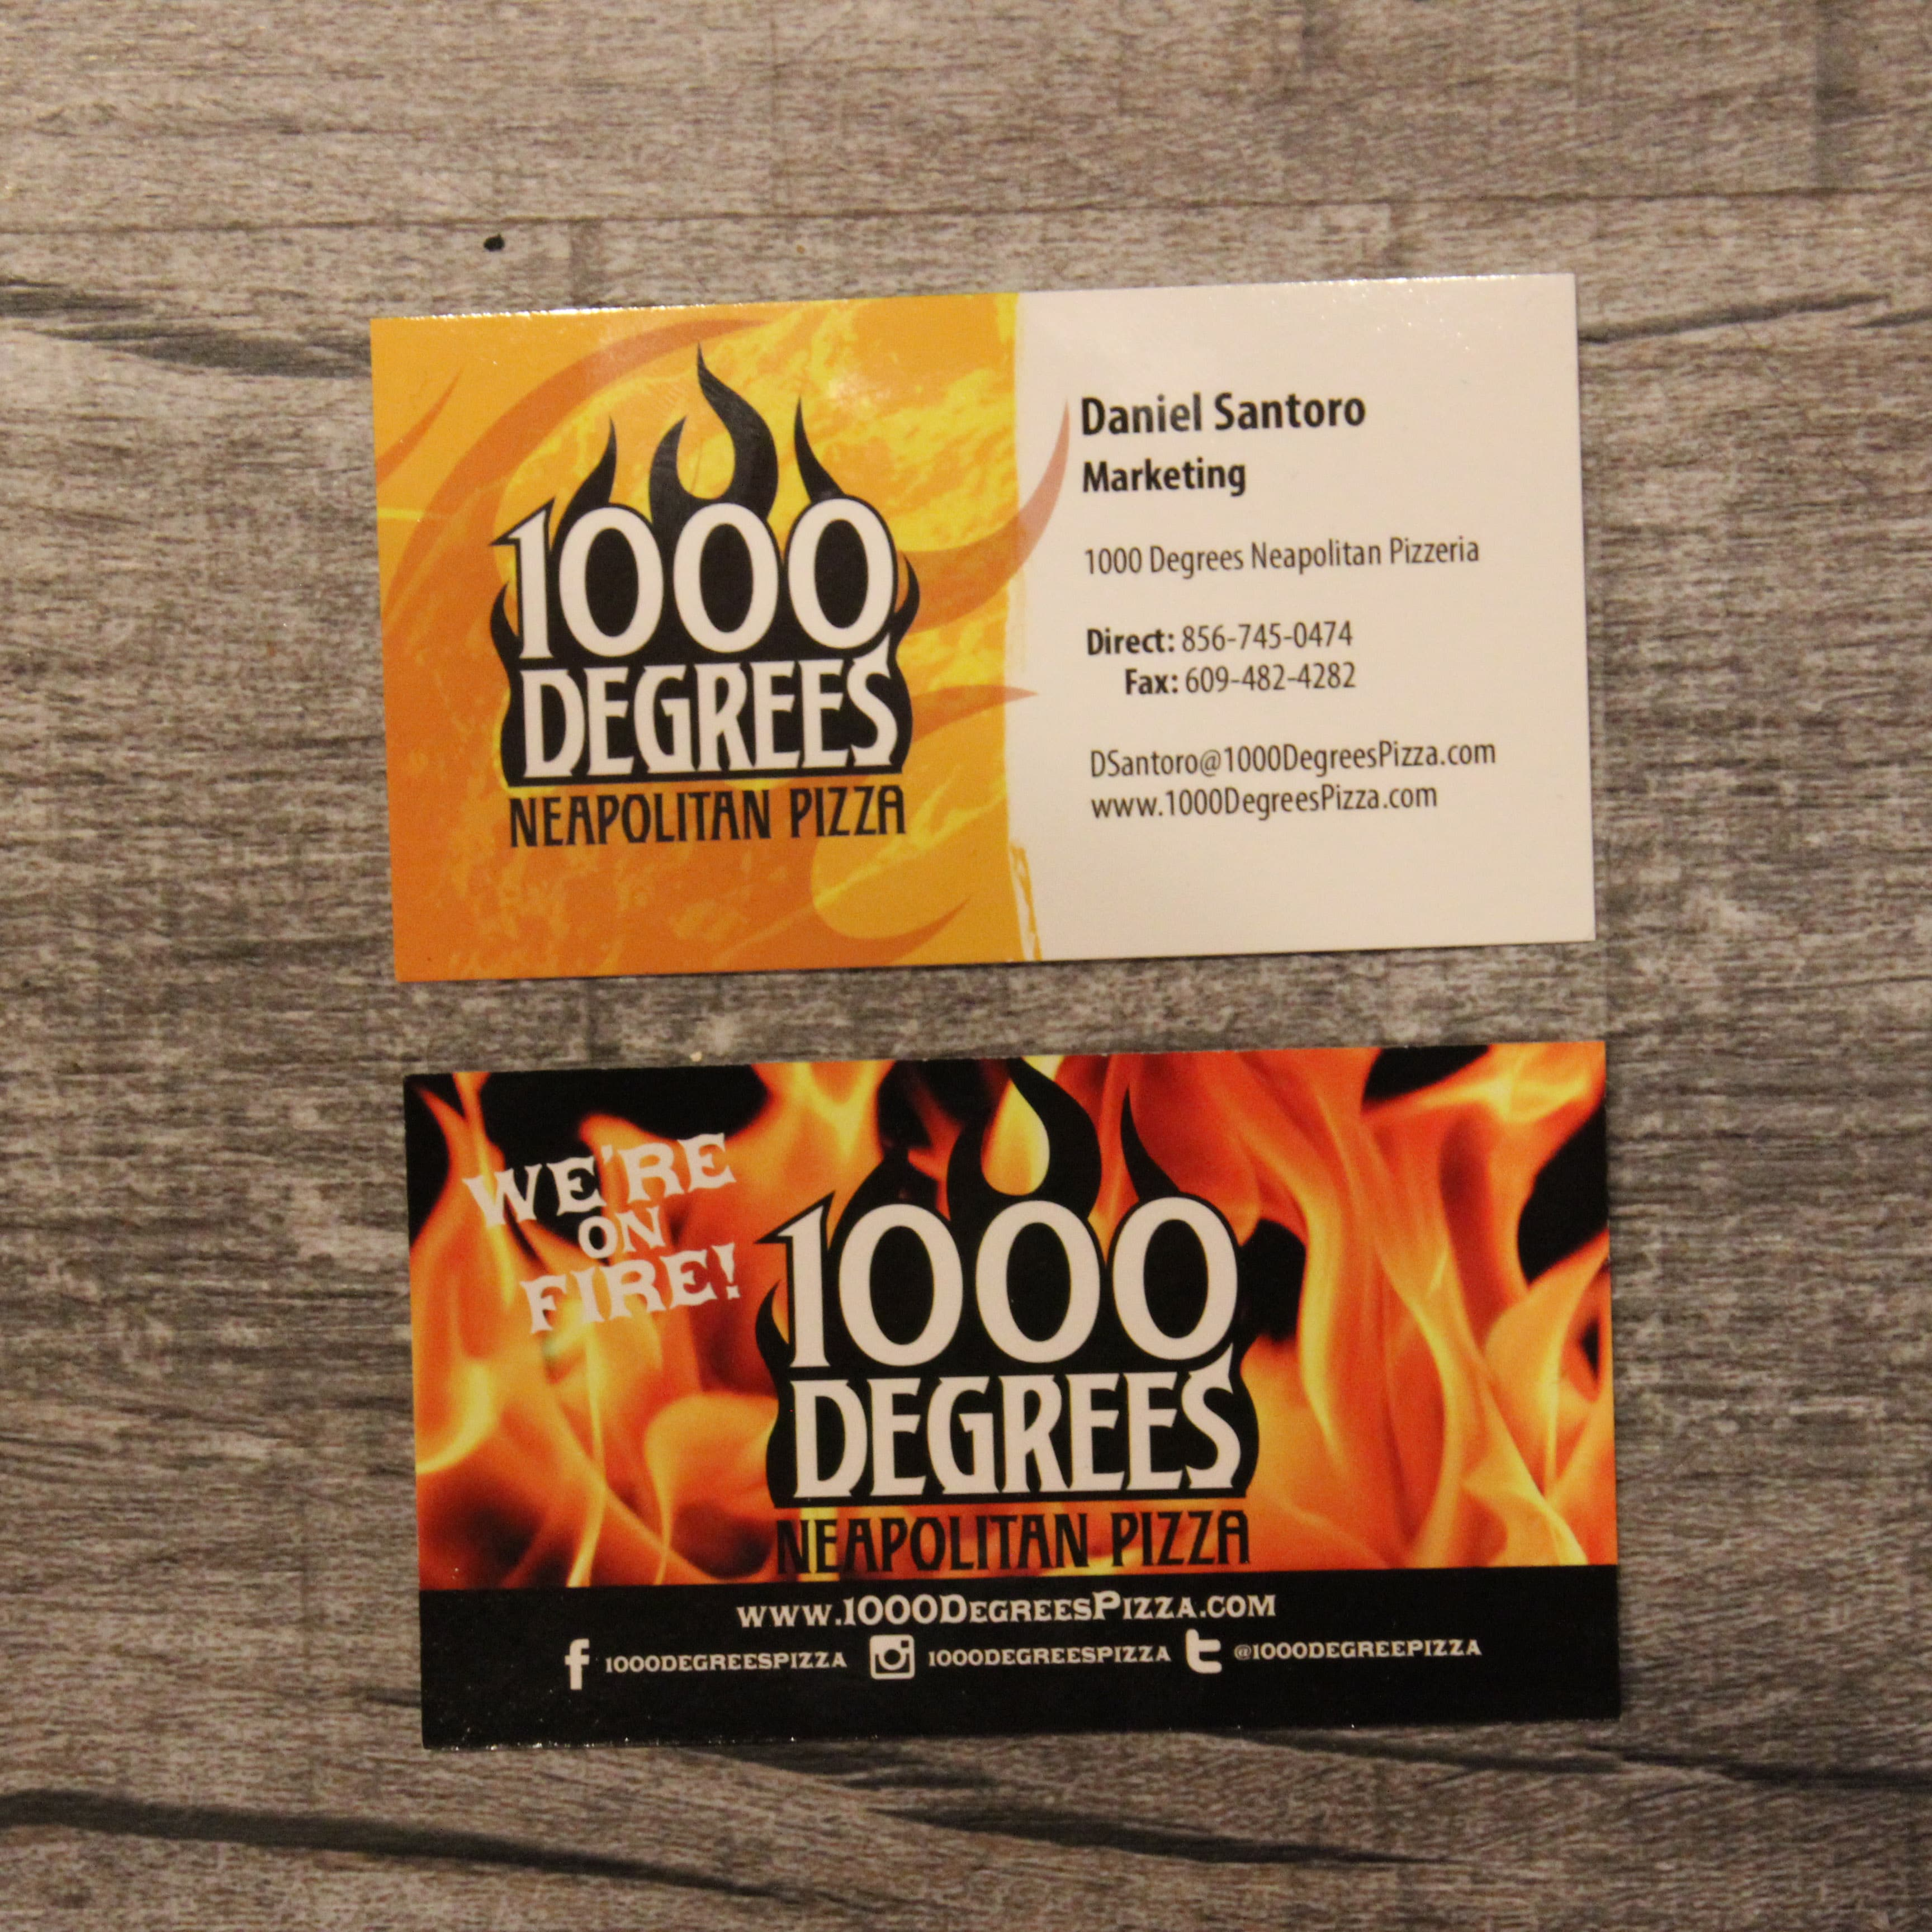 1000 Degrees Business cards - 1000 Degrees Pizza Franchise